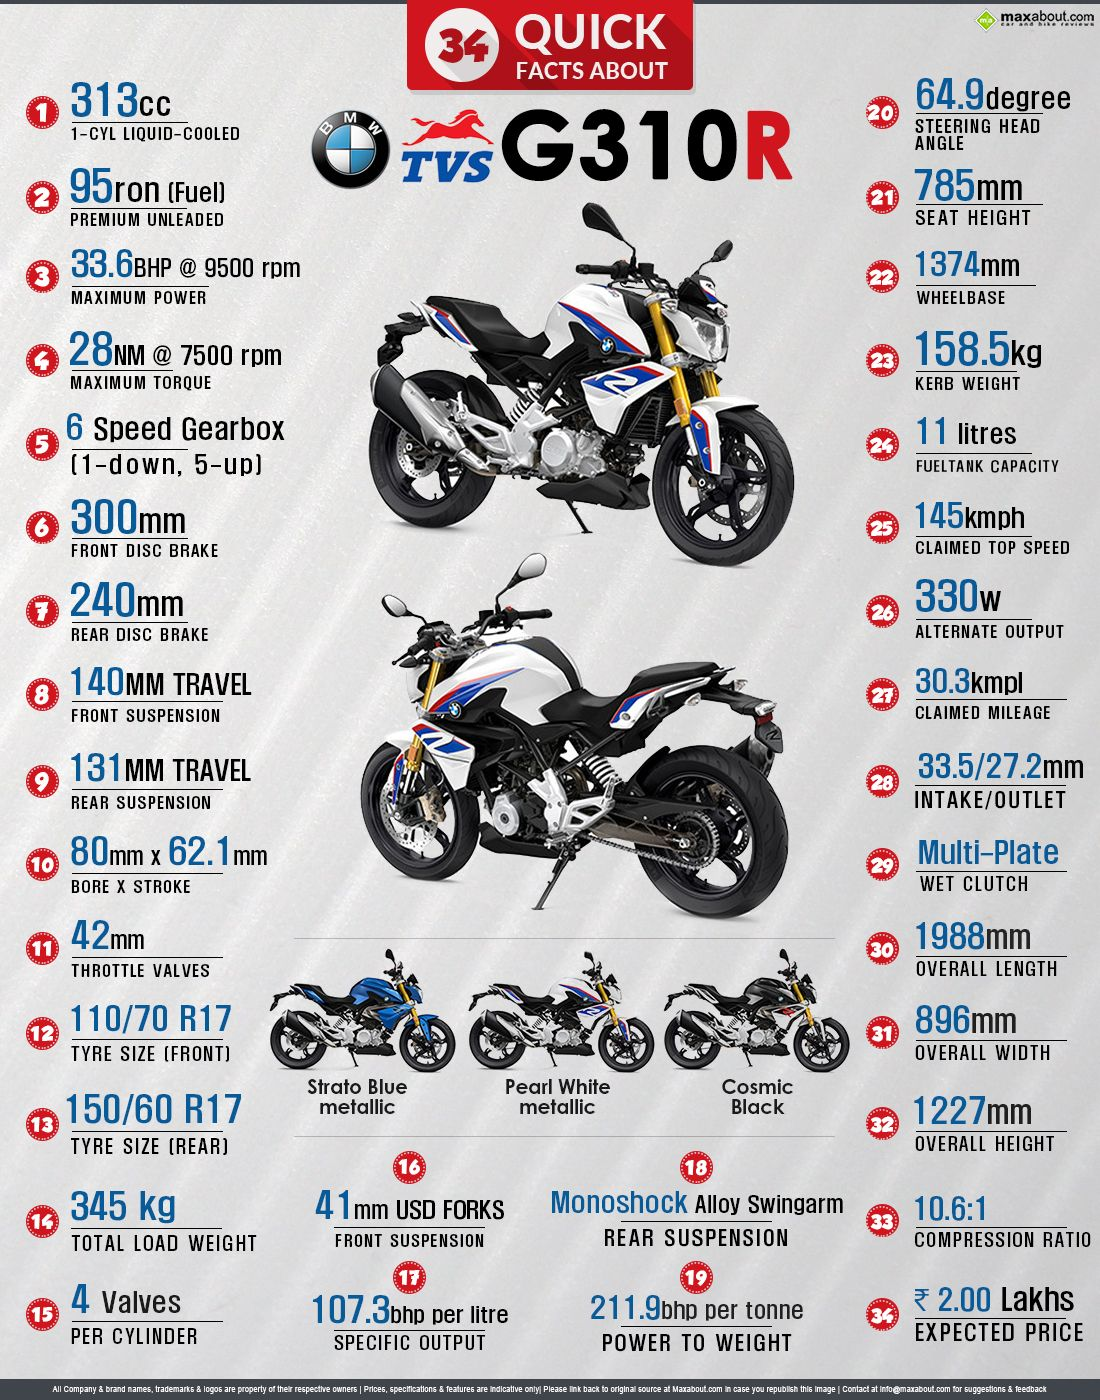 34 Quick Facts About Tvs Bmw G310r Bmw Engine Working New Bmw